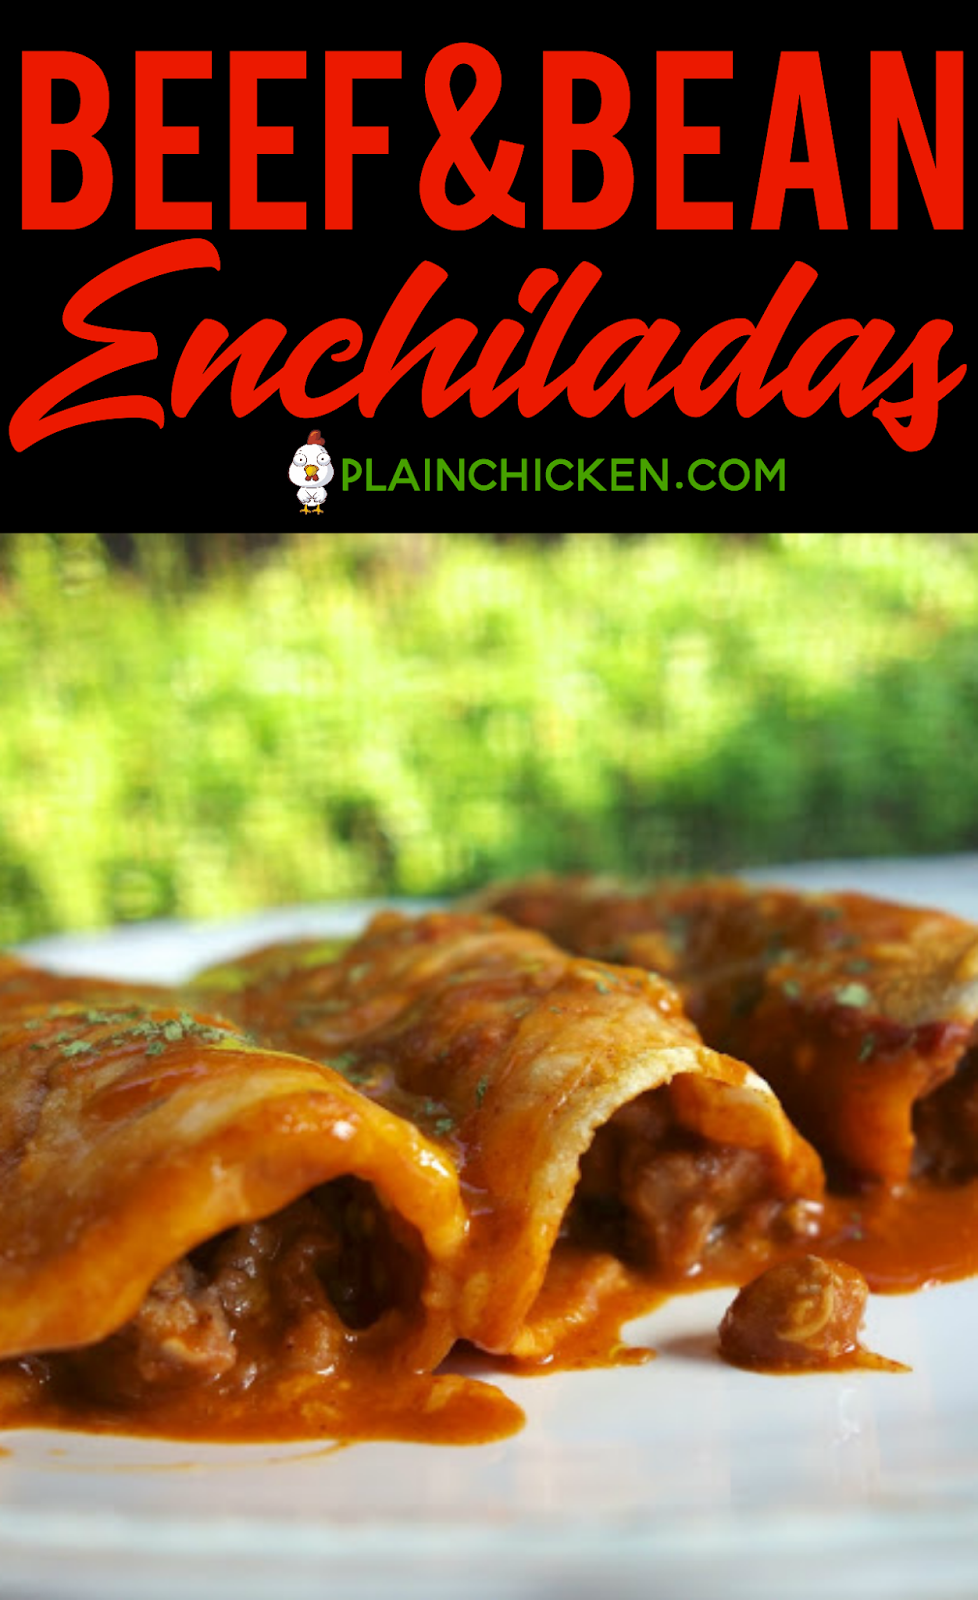 Beef and Bean Enchiladas - quick and easy weeknight meal!! Corn tortillas filled with beef and cheese and topped with enchilada sauce. Ground beef, onions, refried beans, taco seasoning, enchilada sauce, corn tortillas and cheddar cheese. Can make ahead of time and freeze for later! #mexican #enchiladas #freezermeal #easydinnerrecipe